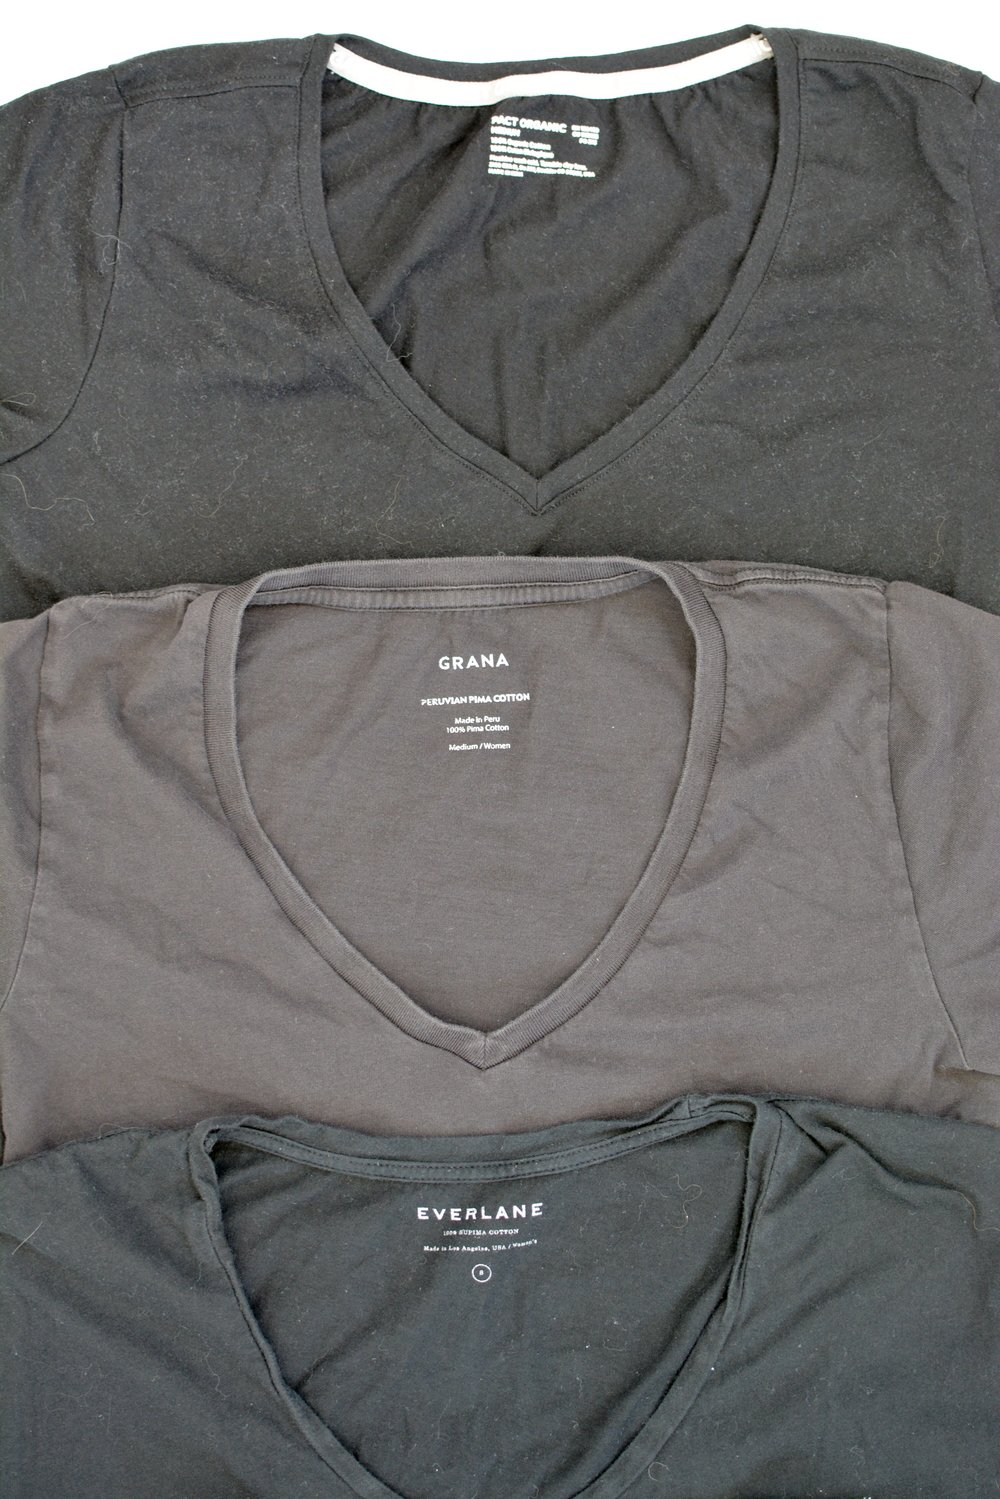 Black Tee Review (2 of 3)-min.jpg